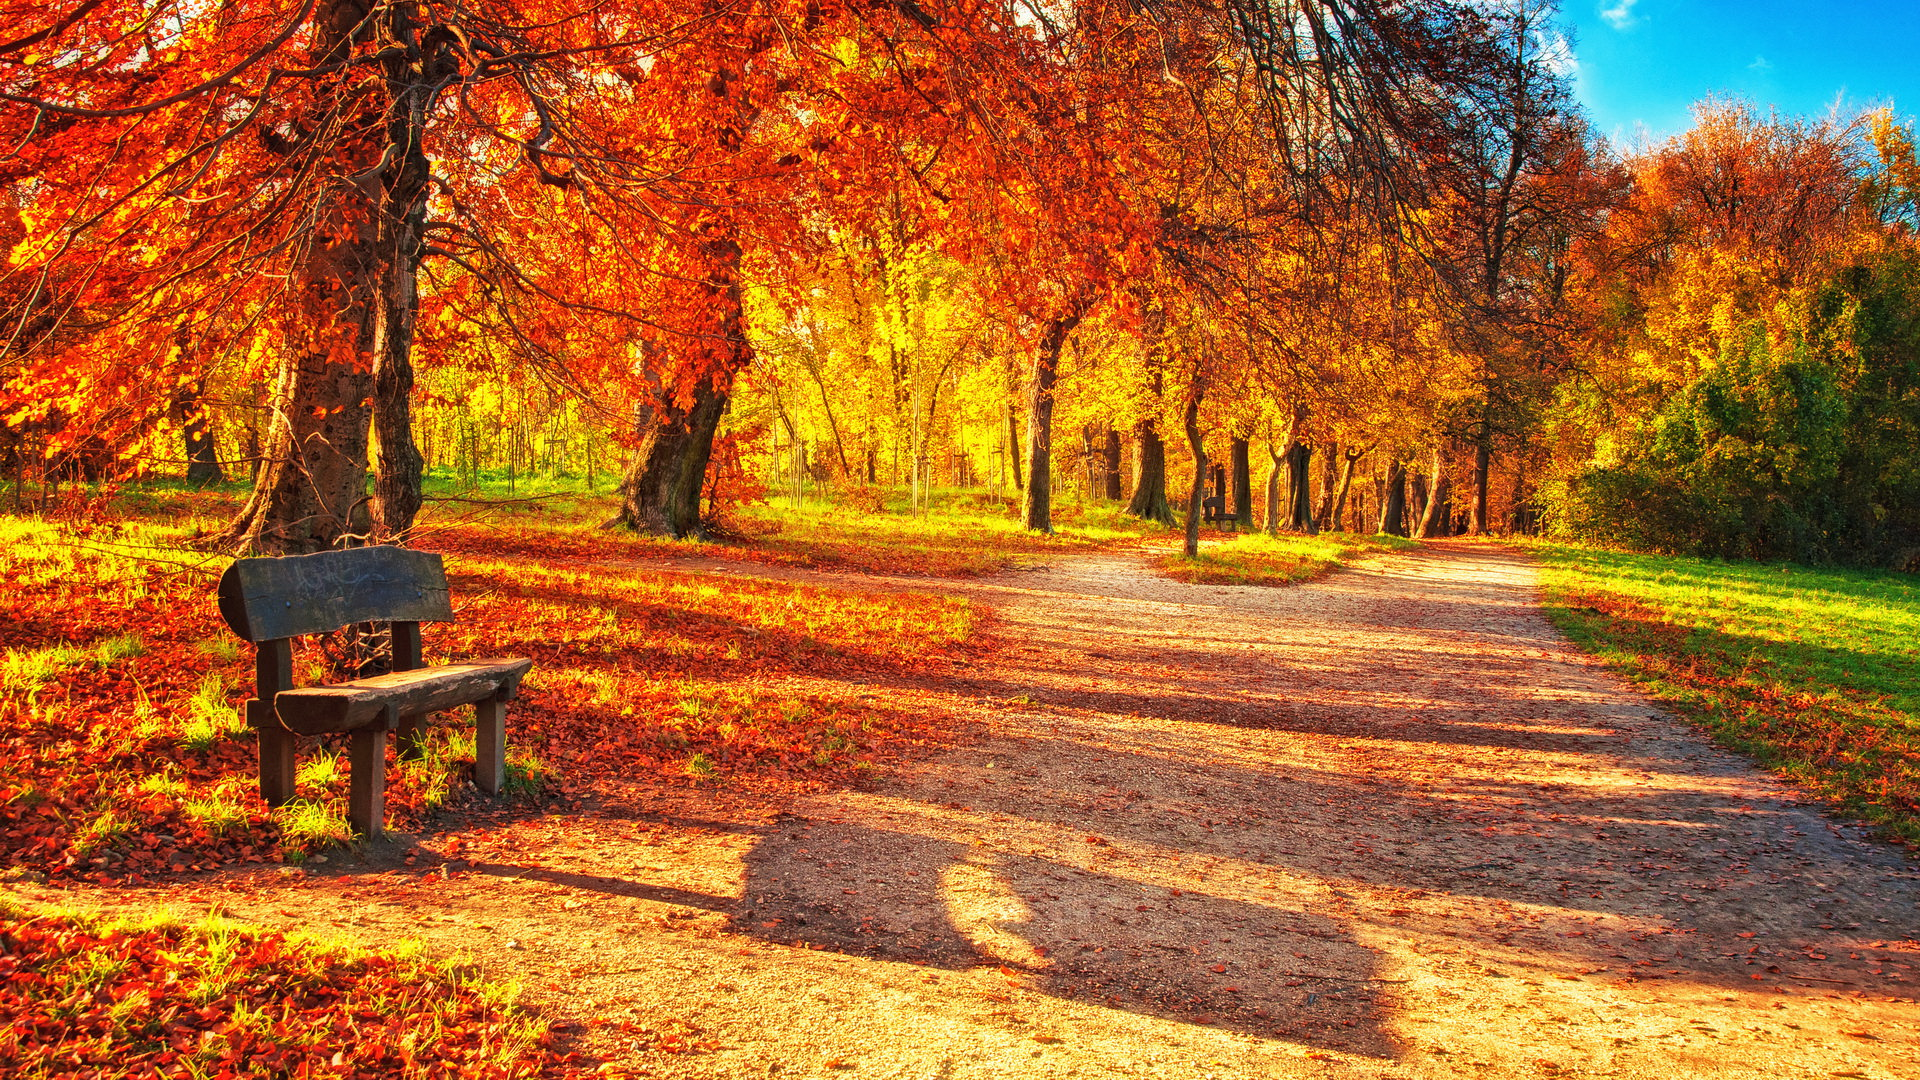 Falling Leaves Wallpaper Screensavers 25 Fall Wallpapers Backgrounds Images Pictures